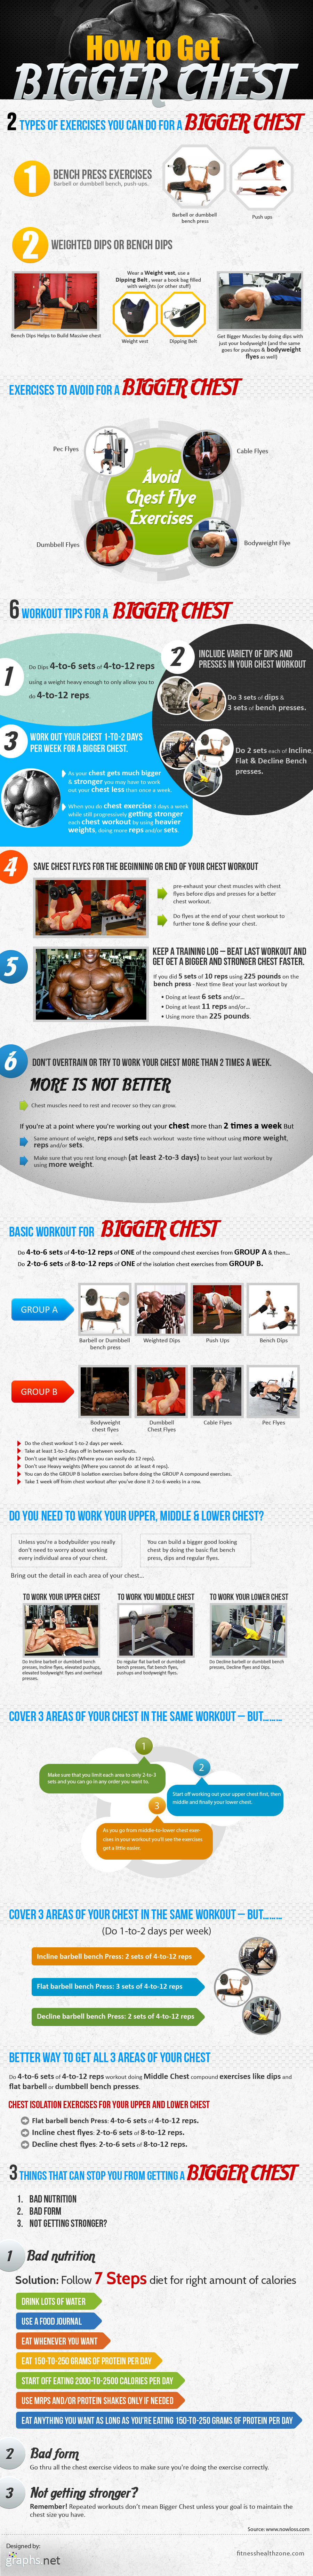 How-to-get-bigger-chest